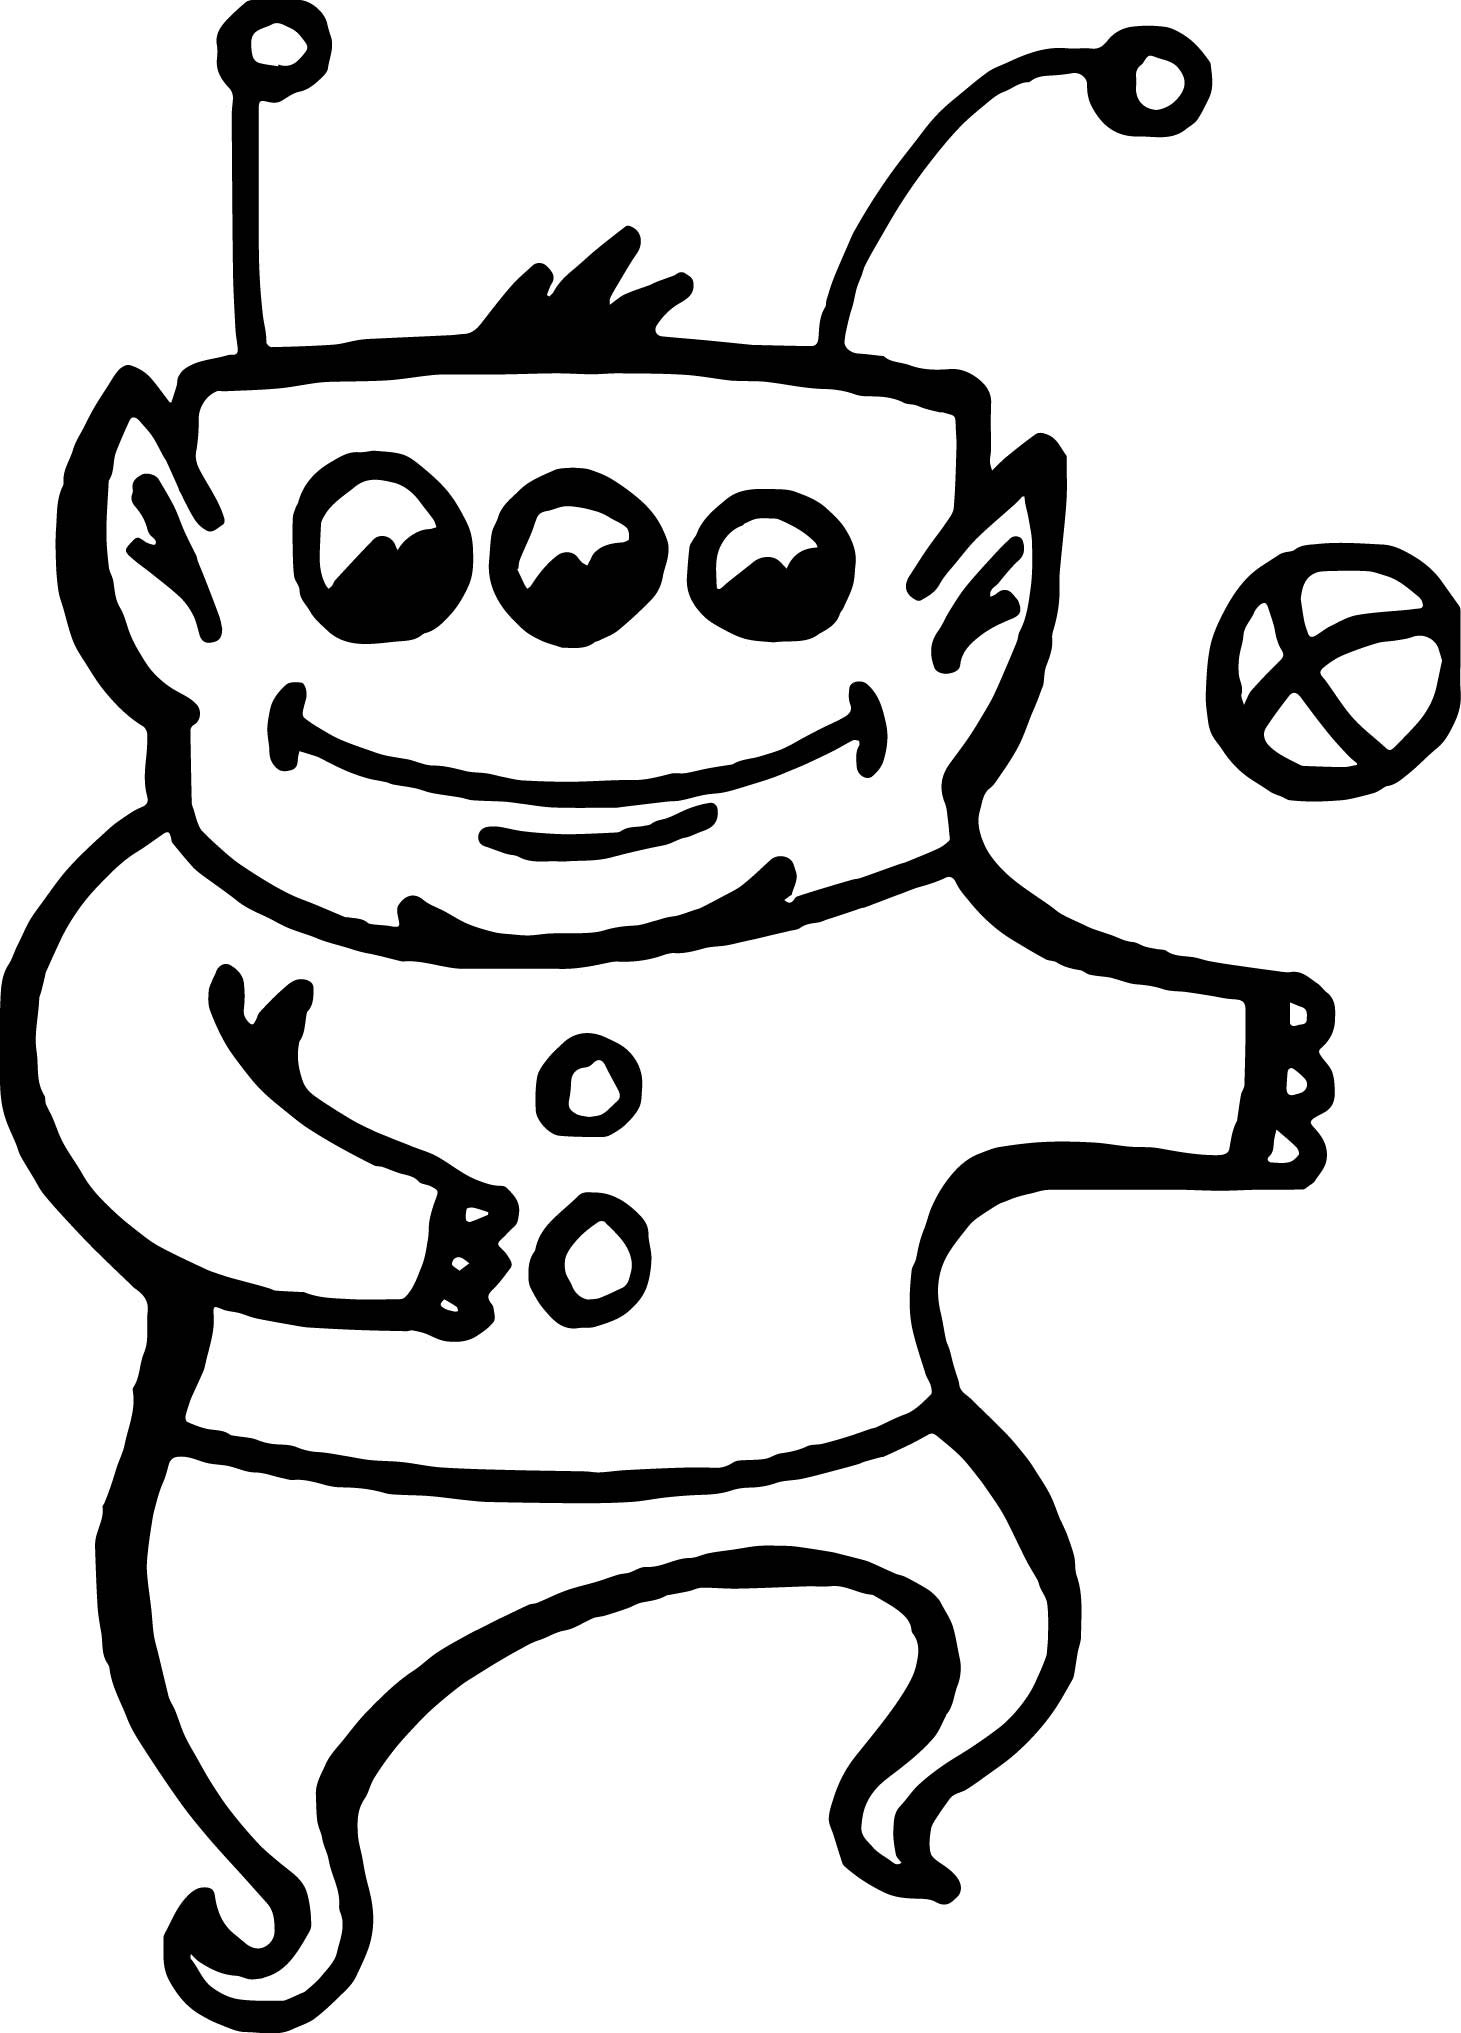 Alien Playing Ball Coloring Page